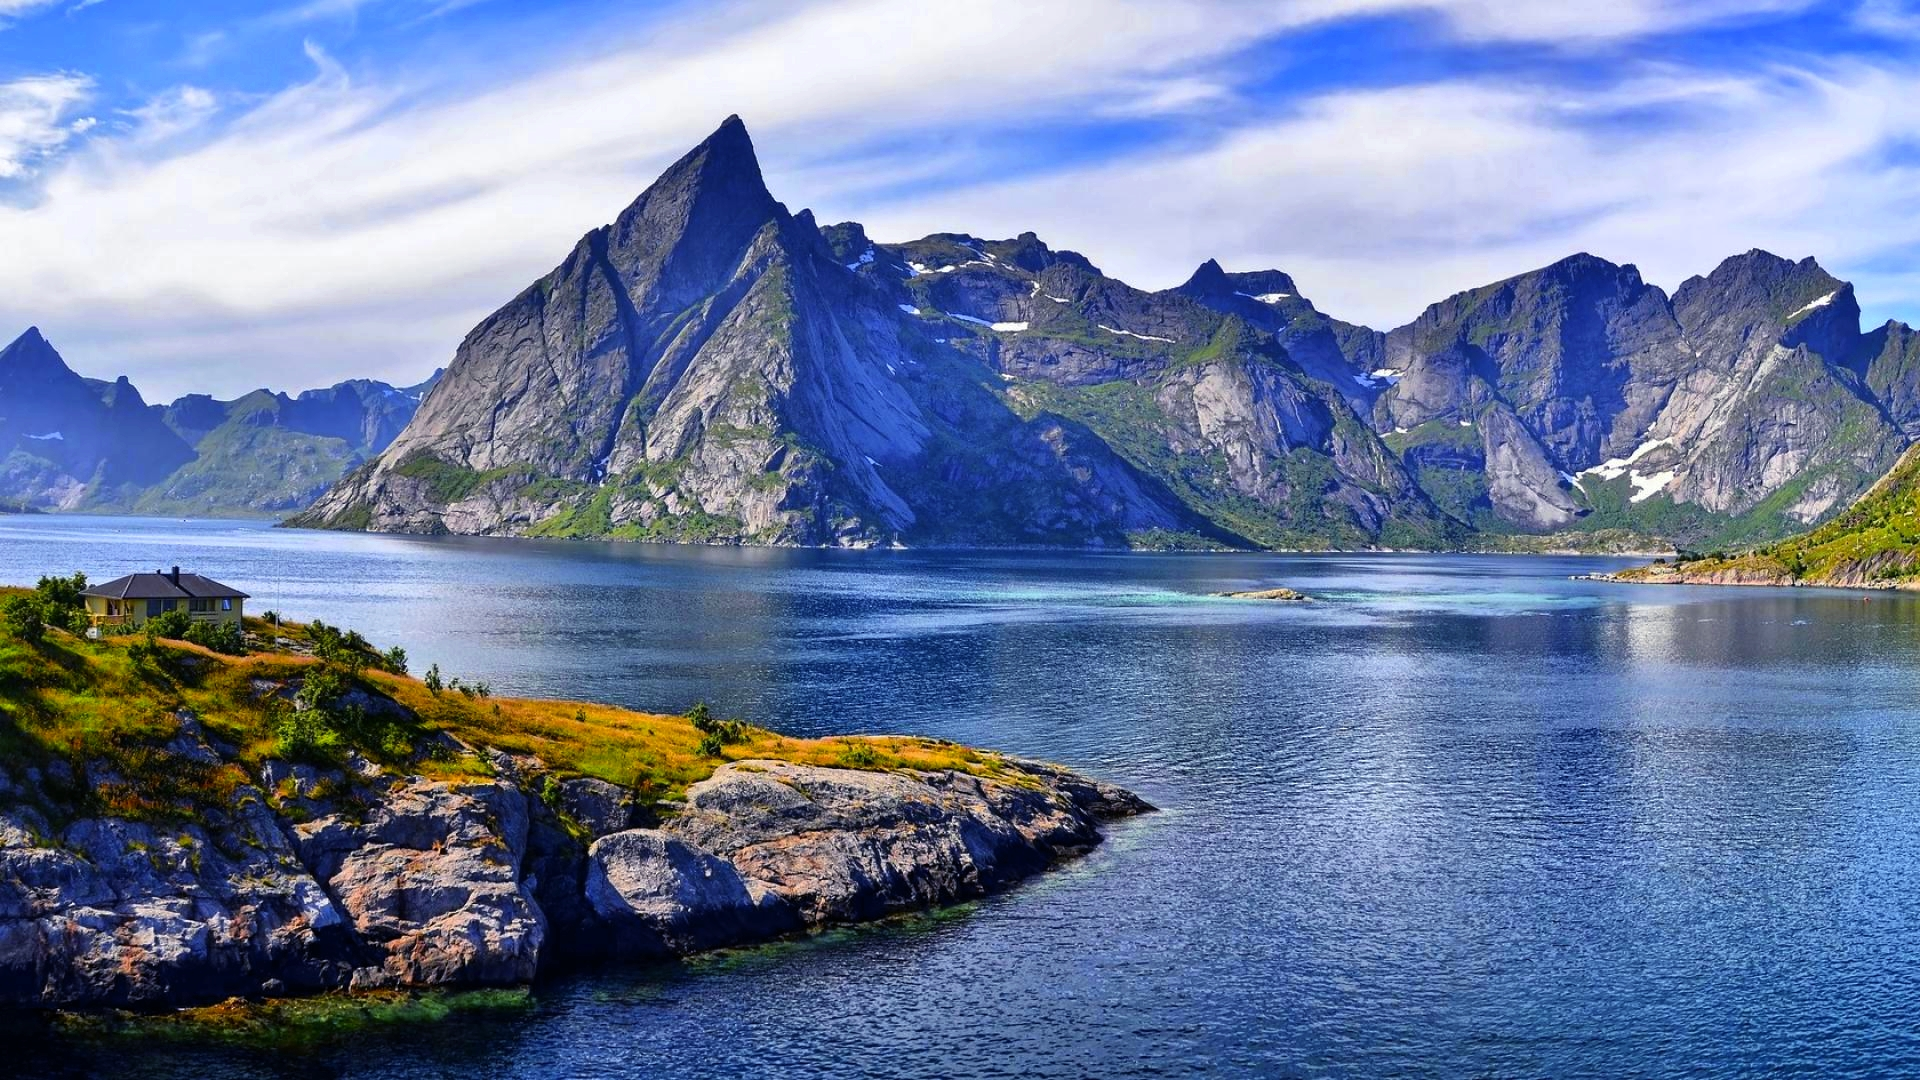 Mountain Nature HD Wallpaper For PC